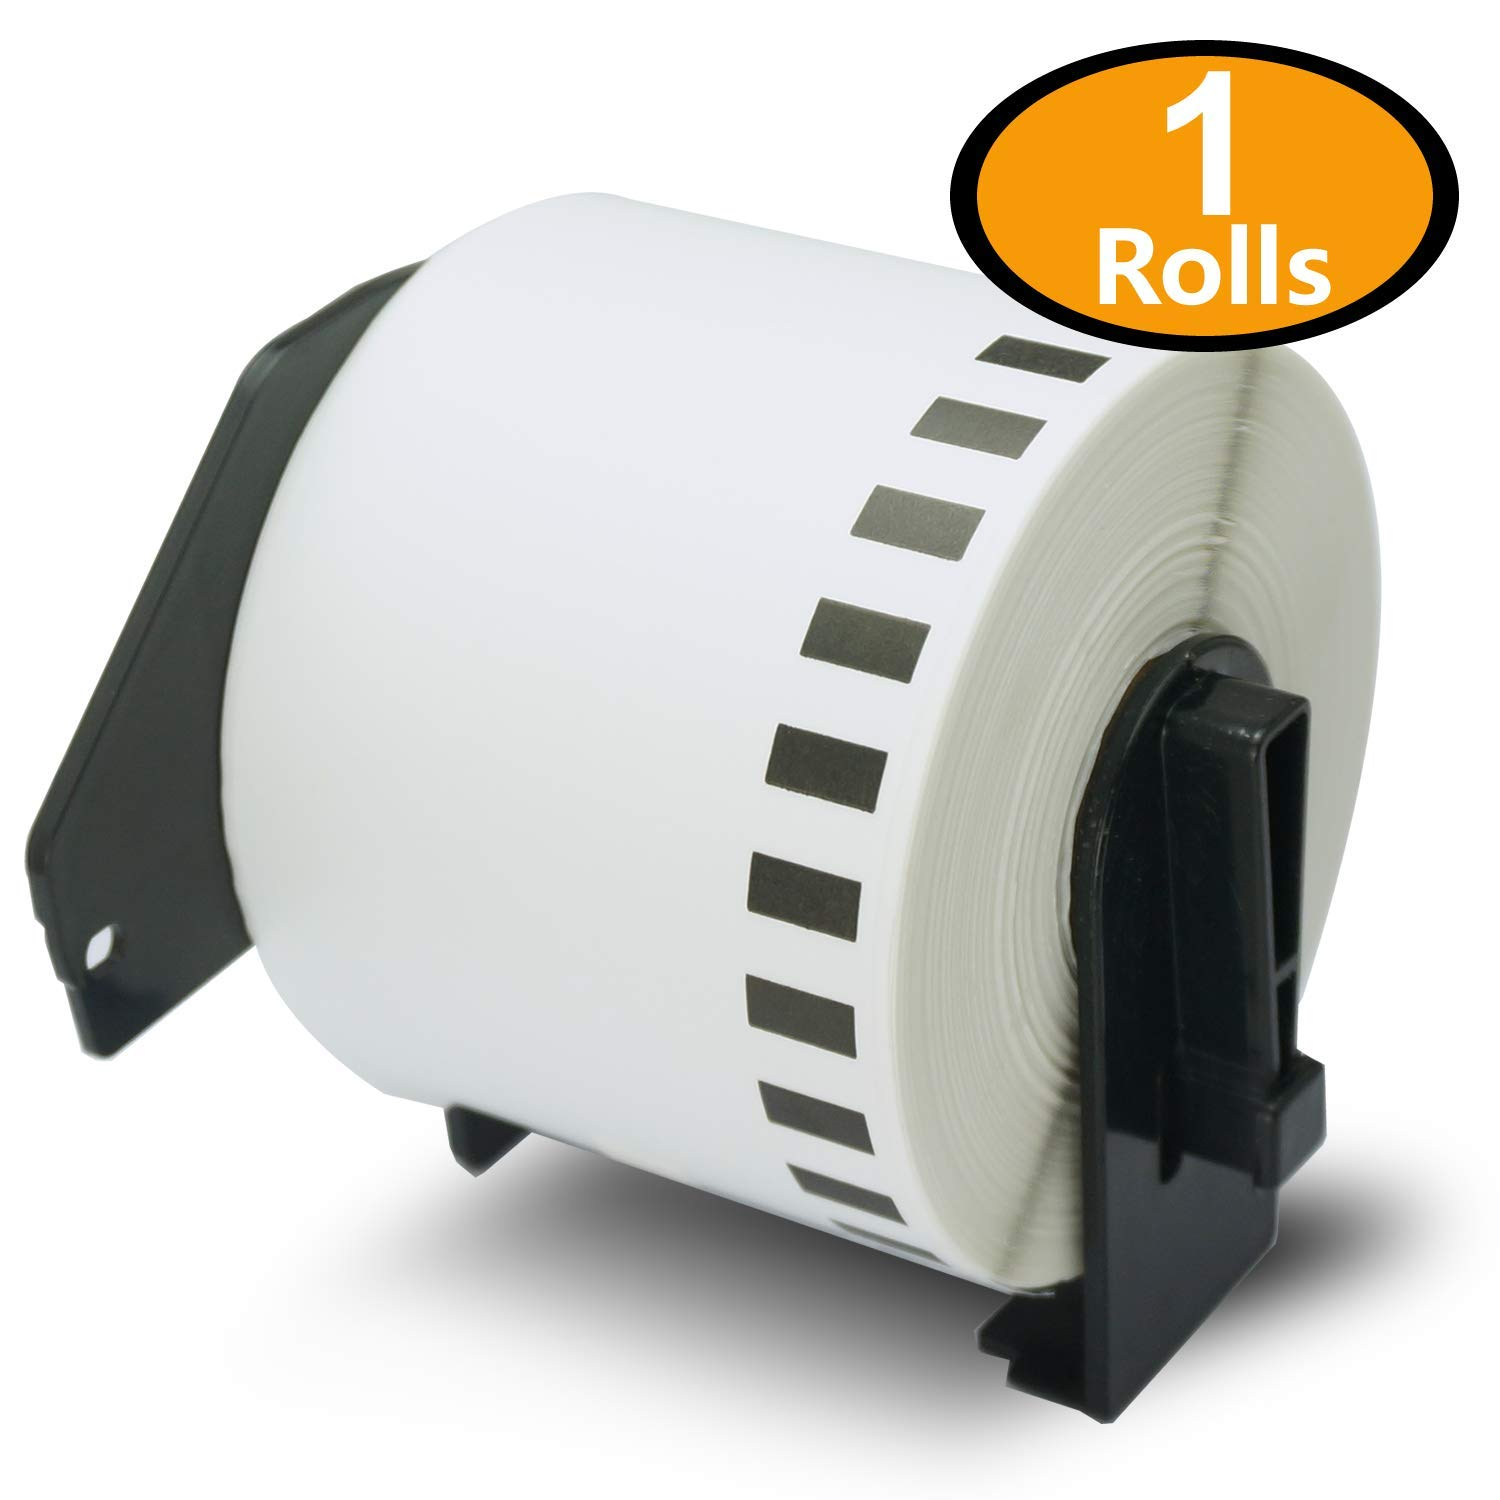 10 Rolls Brother-Compatible DK-22205 62mm x 30.48m Continuous Length Paper Tape Labels With Refillable Cartridge BETCKEY DK22205-Y10